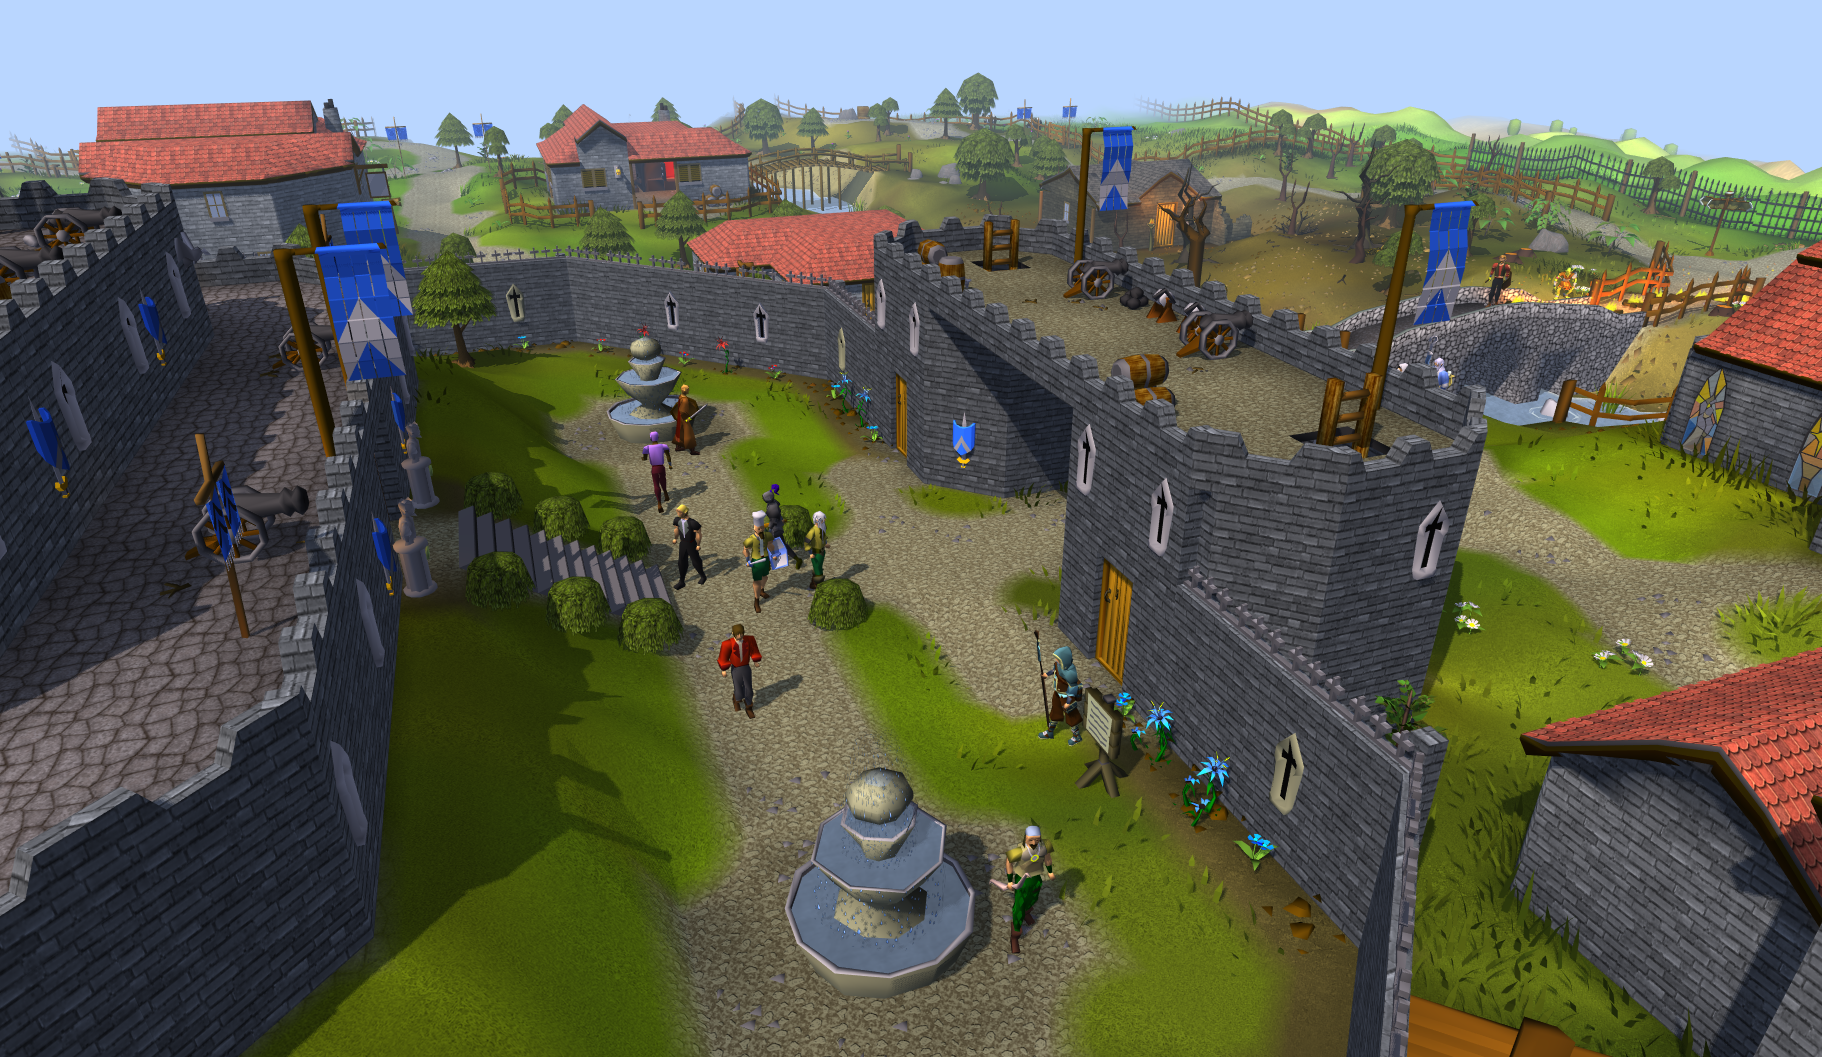 117Scape's OSRS HD Plugin Is Now Available